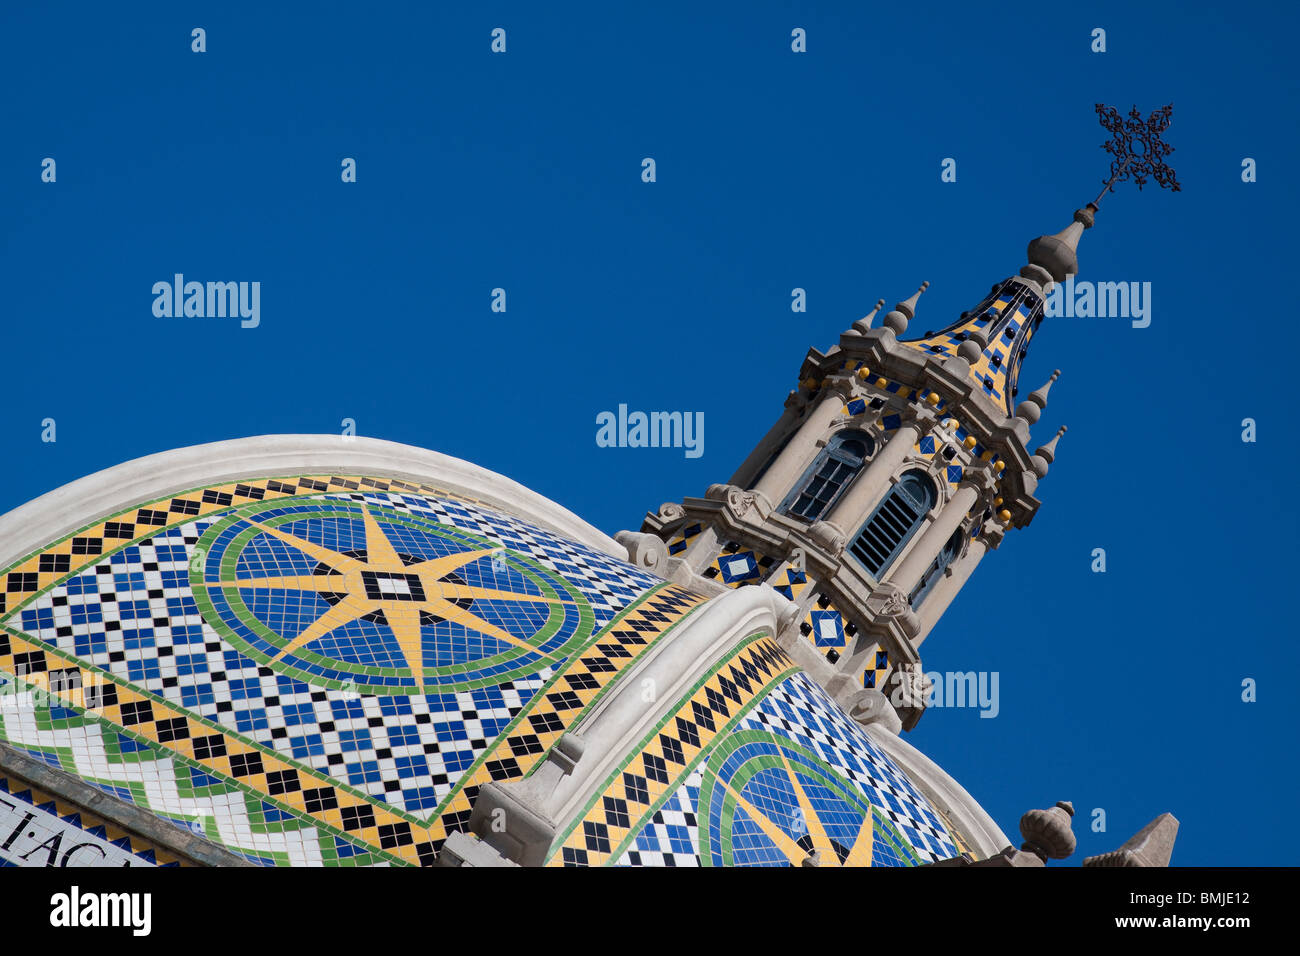 Moorish tiled dome and spire above Museum of Man in Balboa Park San Diego - Stock Image